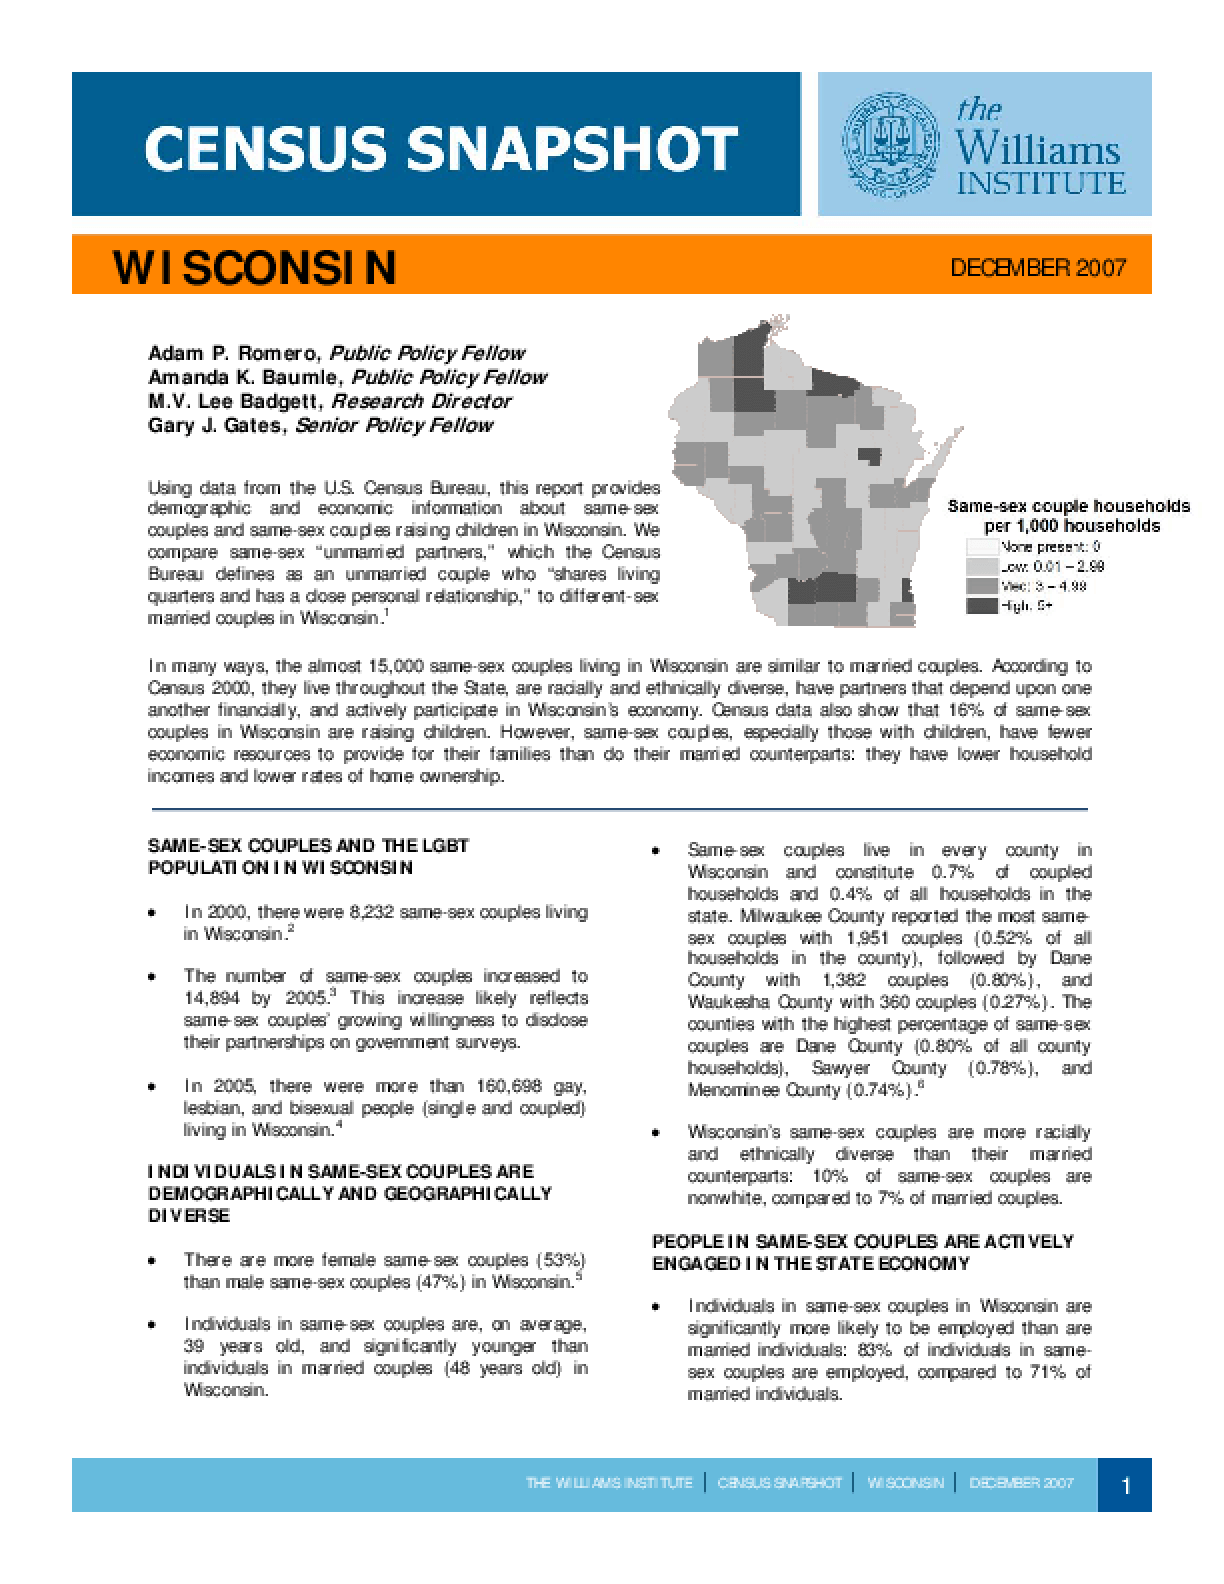 Census Snapshot: Wisconsin